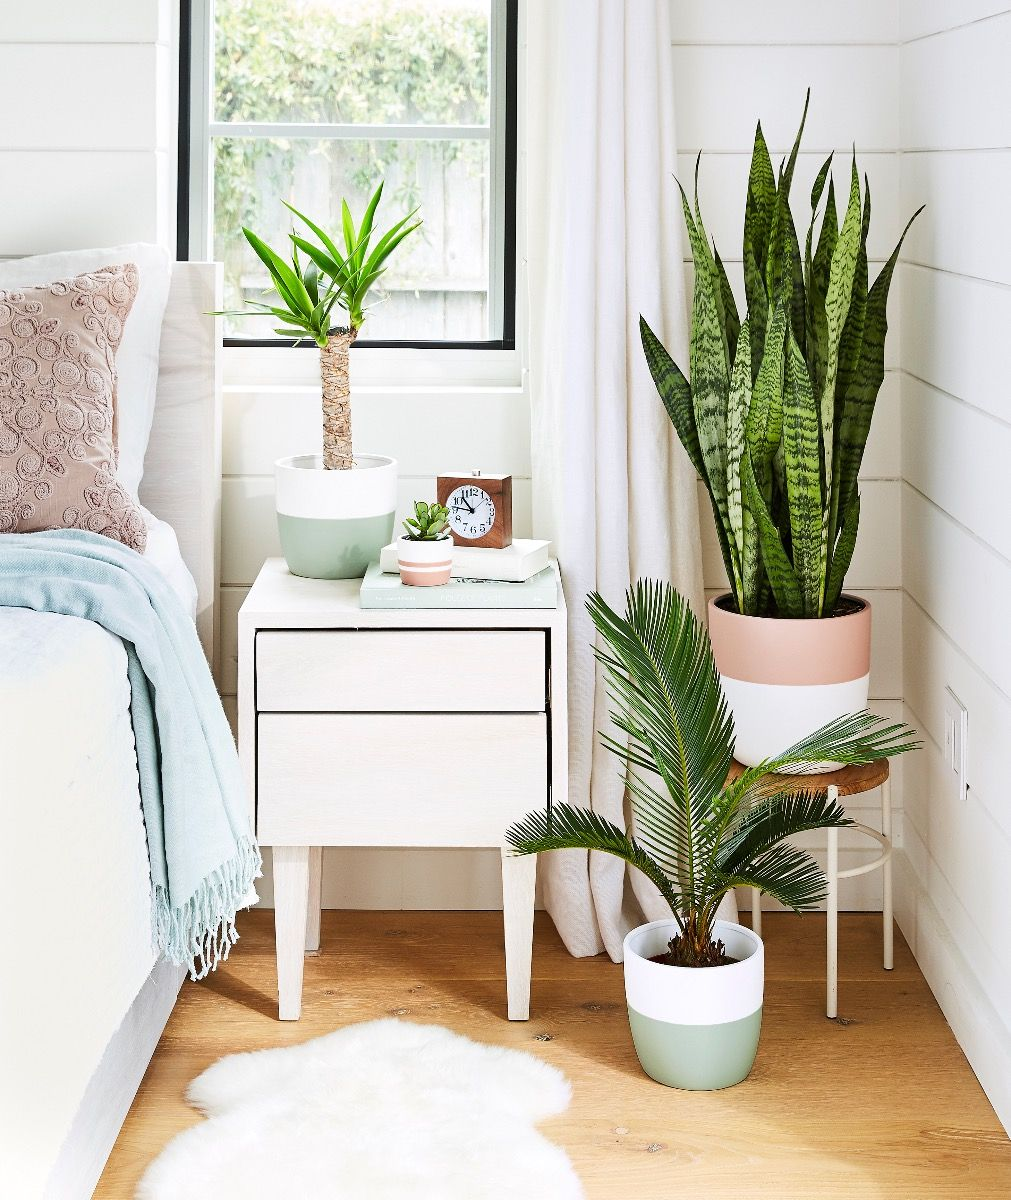 tropical vibes bedroom + indoor plants Ansel & Ivy